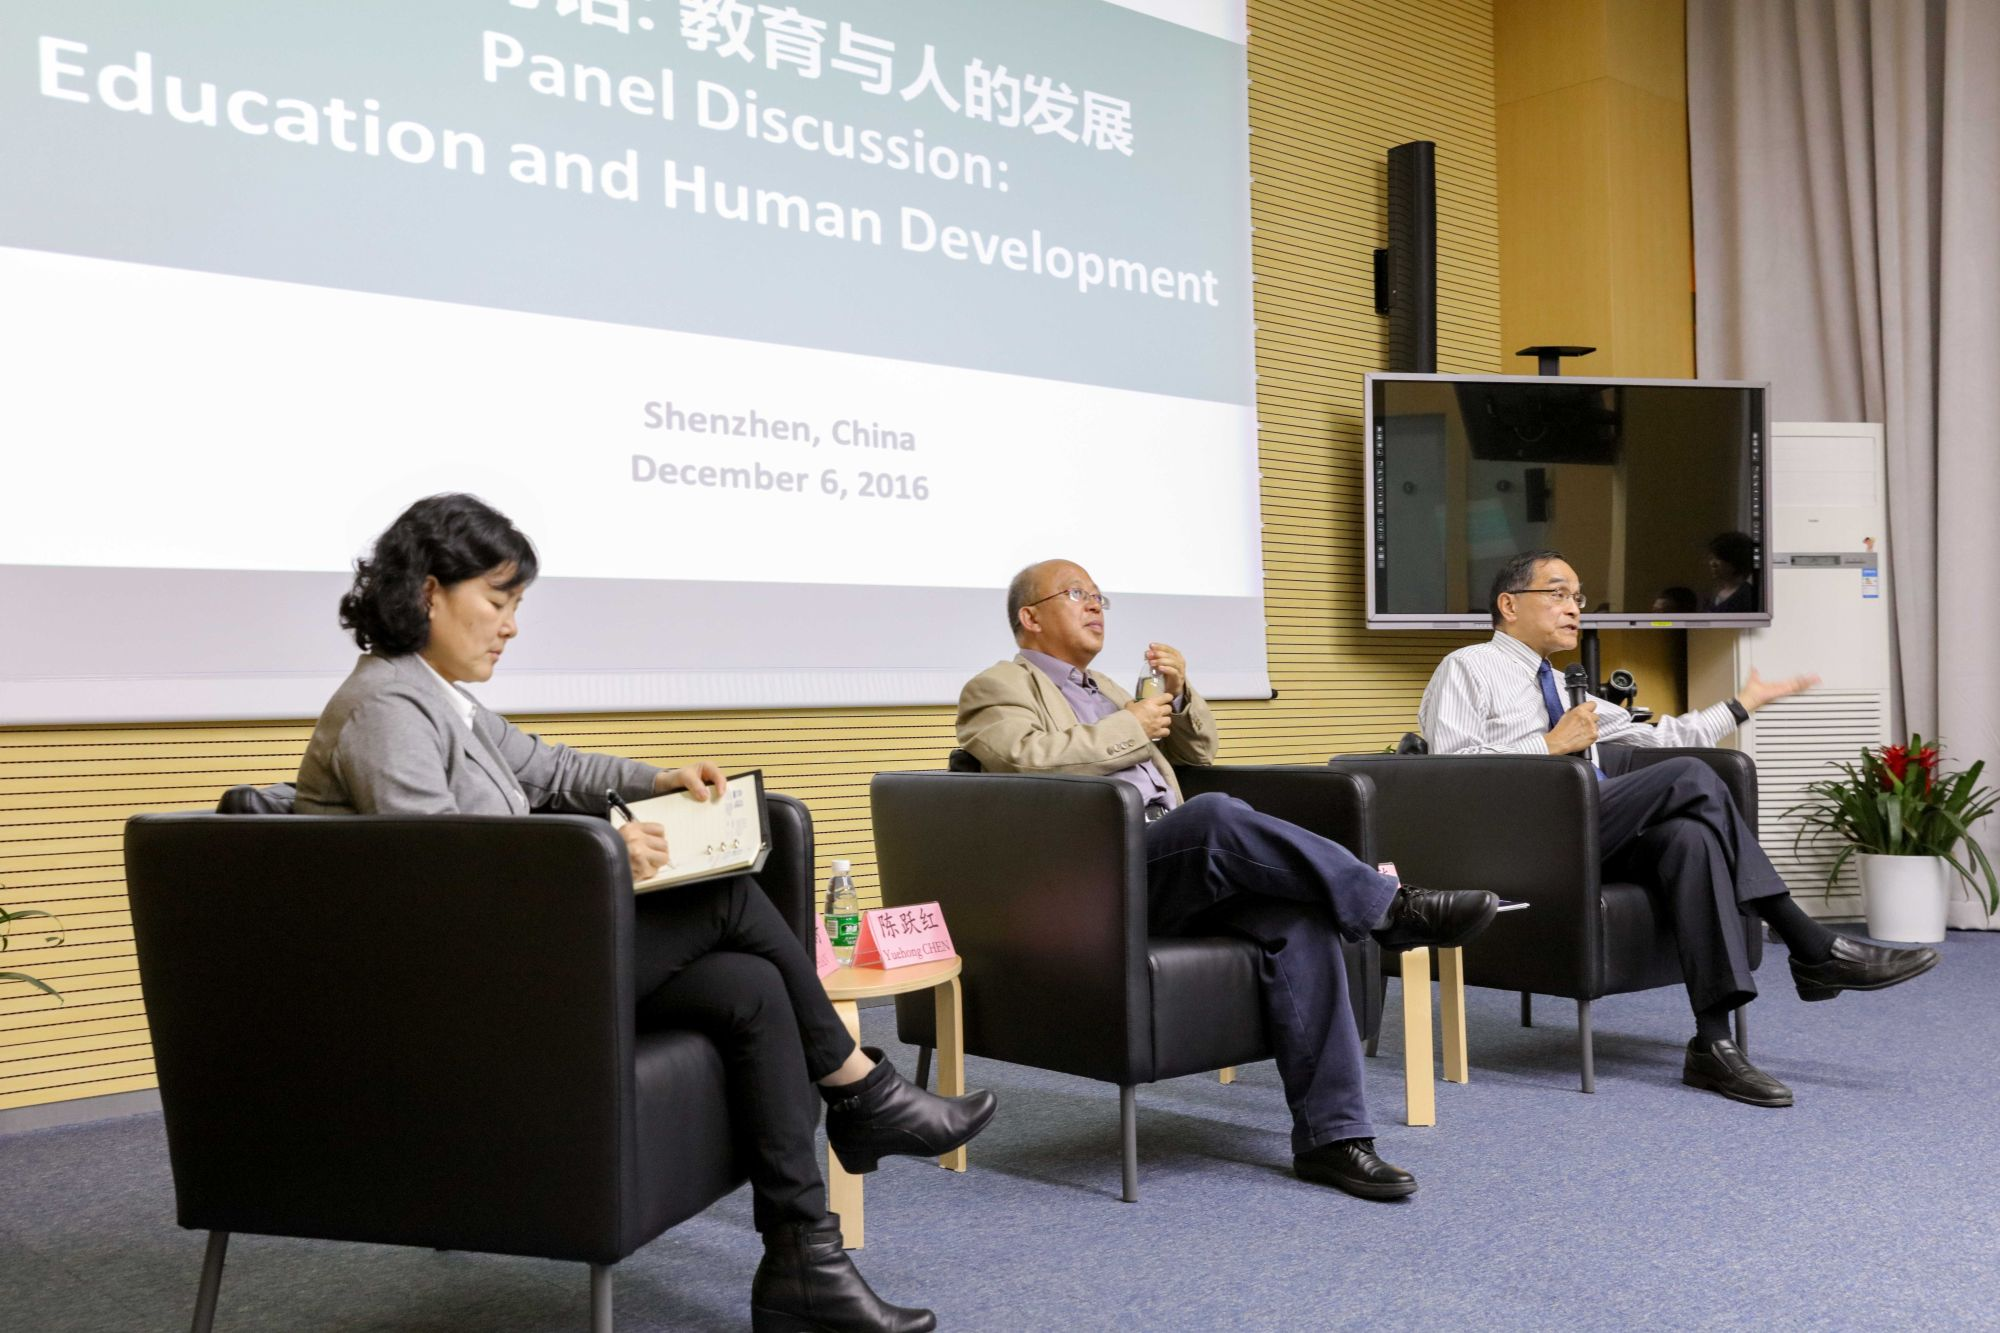 """Panel Discussion on """"Education and Human Development"""" held at SUSTech"""